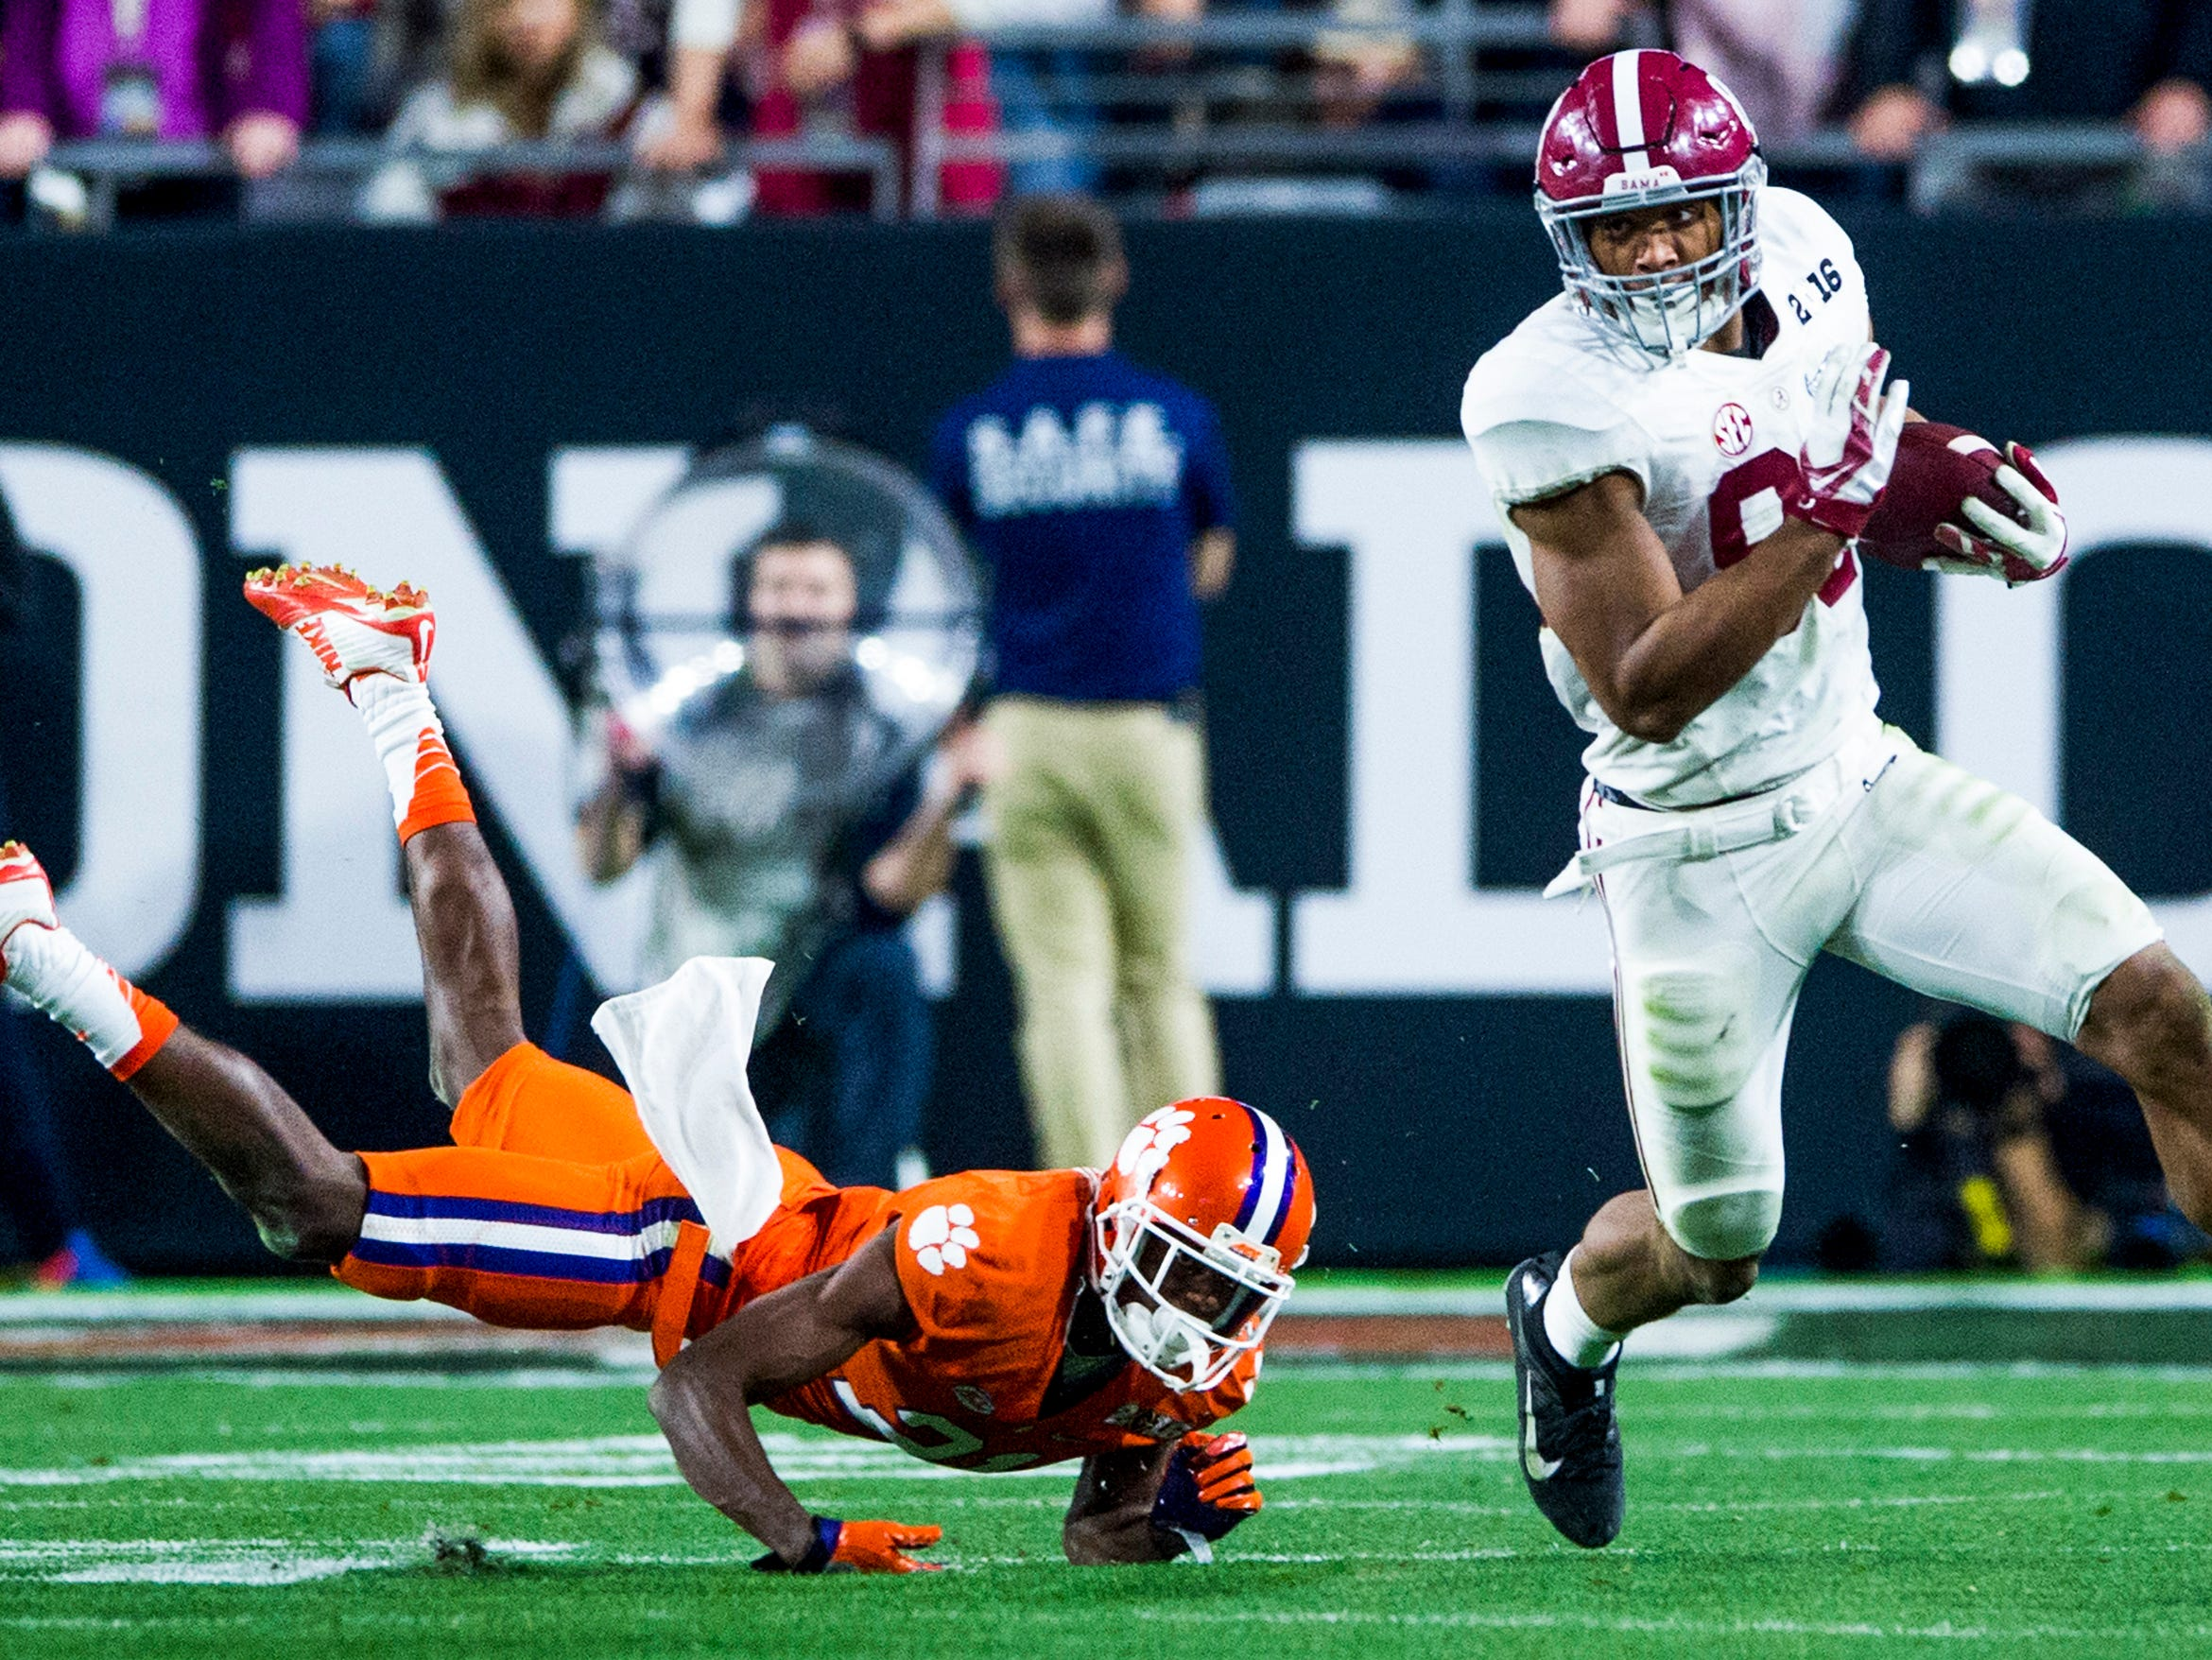 Alabama tight end O.J. Howard (88) gets by Clemson cornerback Adrian Baker (21) in the College Football Playoff Championship Game on Monday January 11, 2016 at University of Phoenix Stadium in Glendale, Az.